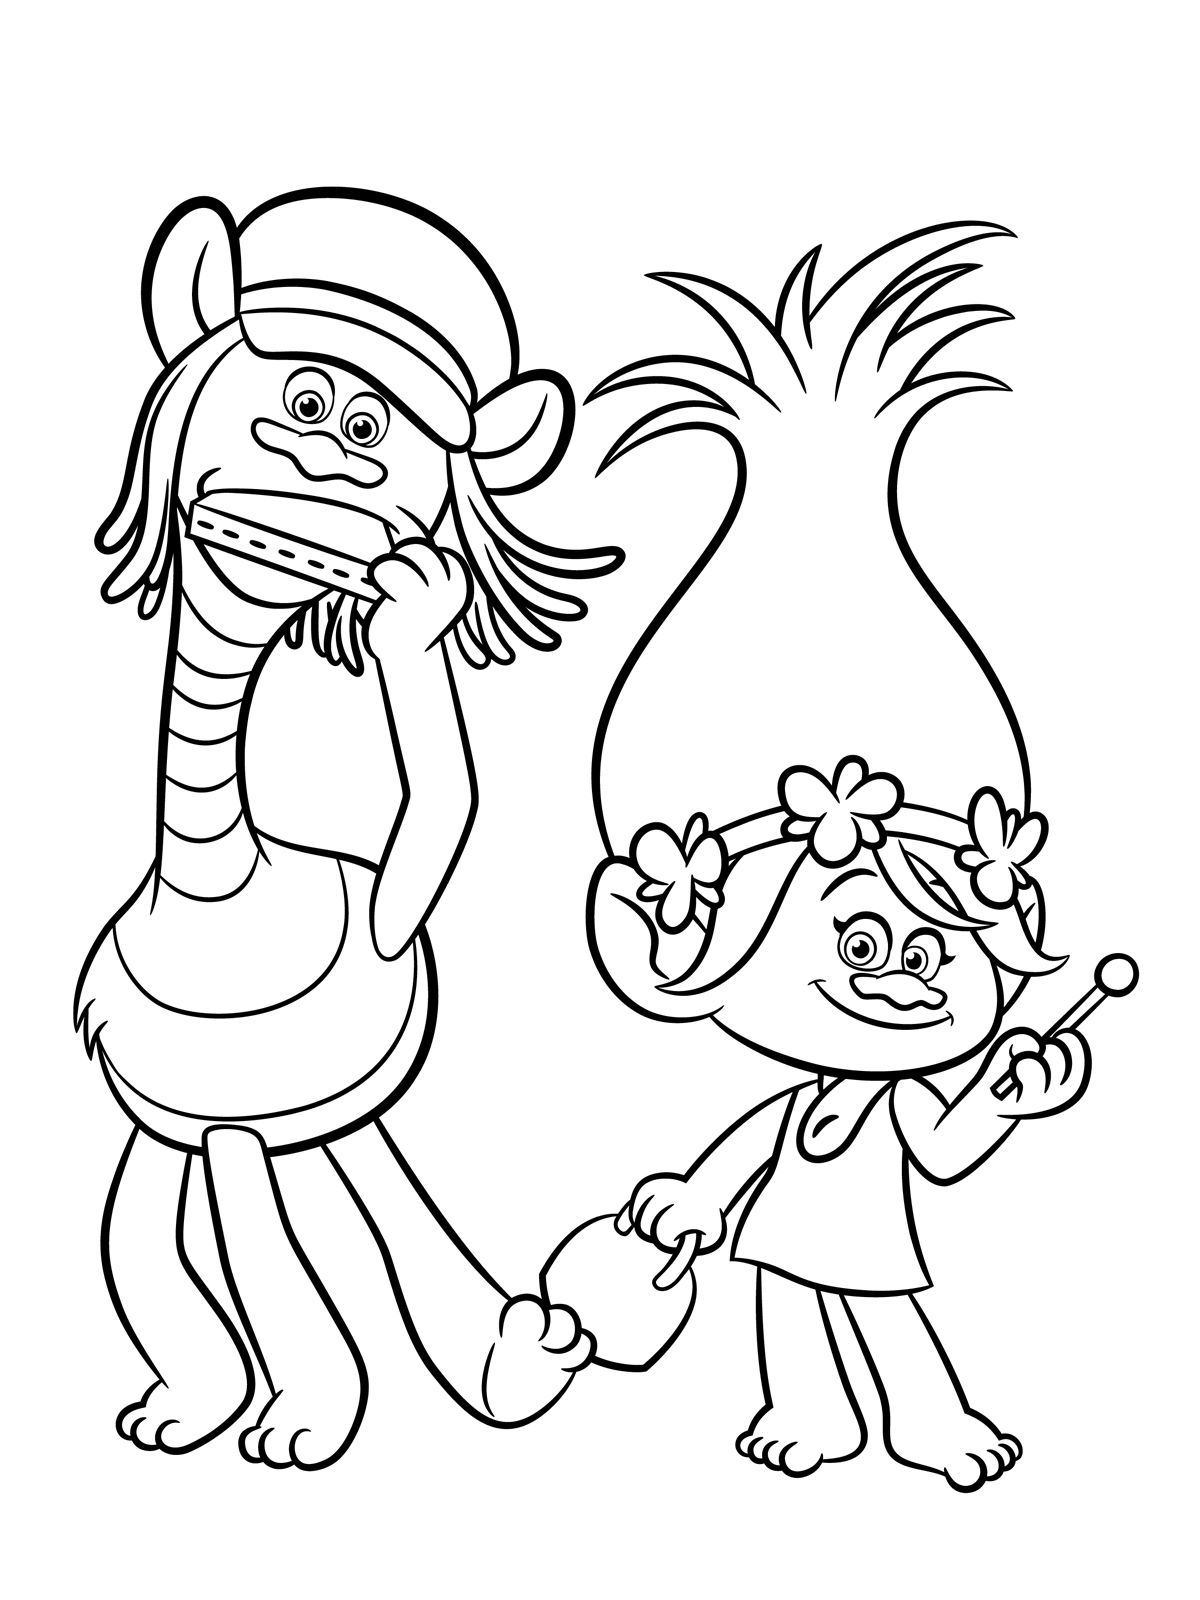 coloring printouts for kids printable coloring pages for kids coloring pages for kids printouts coloring for kids